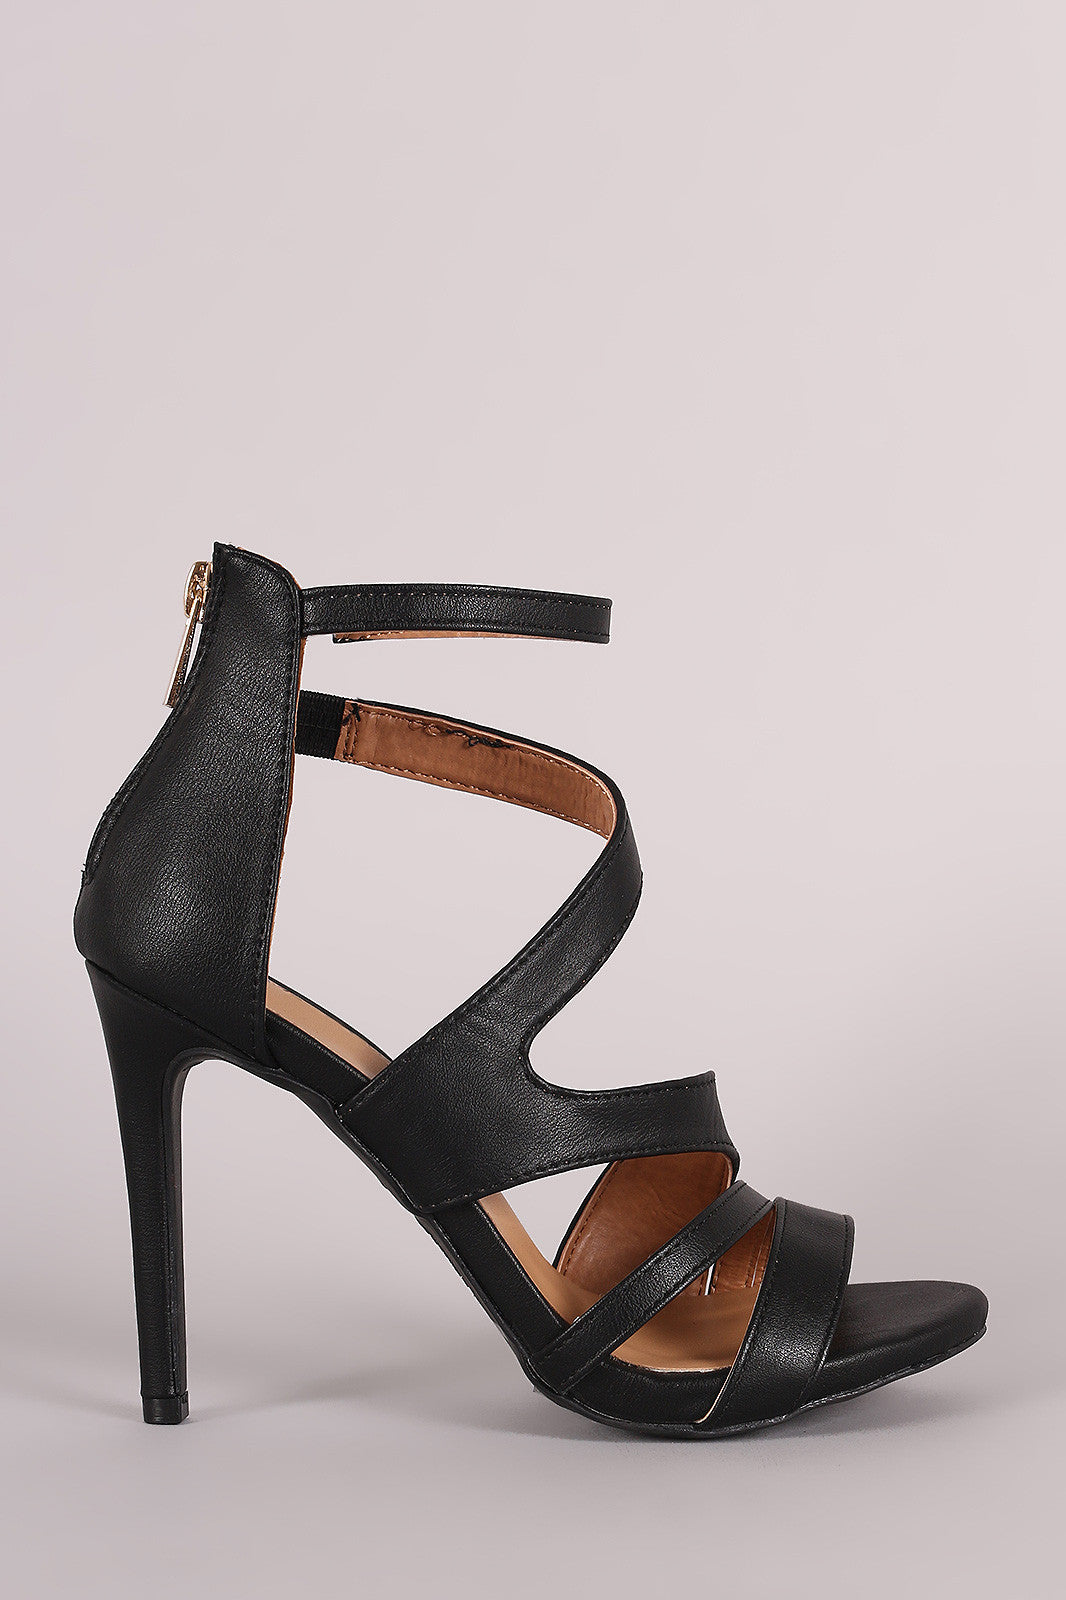 Anne Michelle Strappy Slanted Peep Toe Stiletto Heel - Thick 'N' Curvy Shop - 4